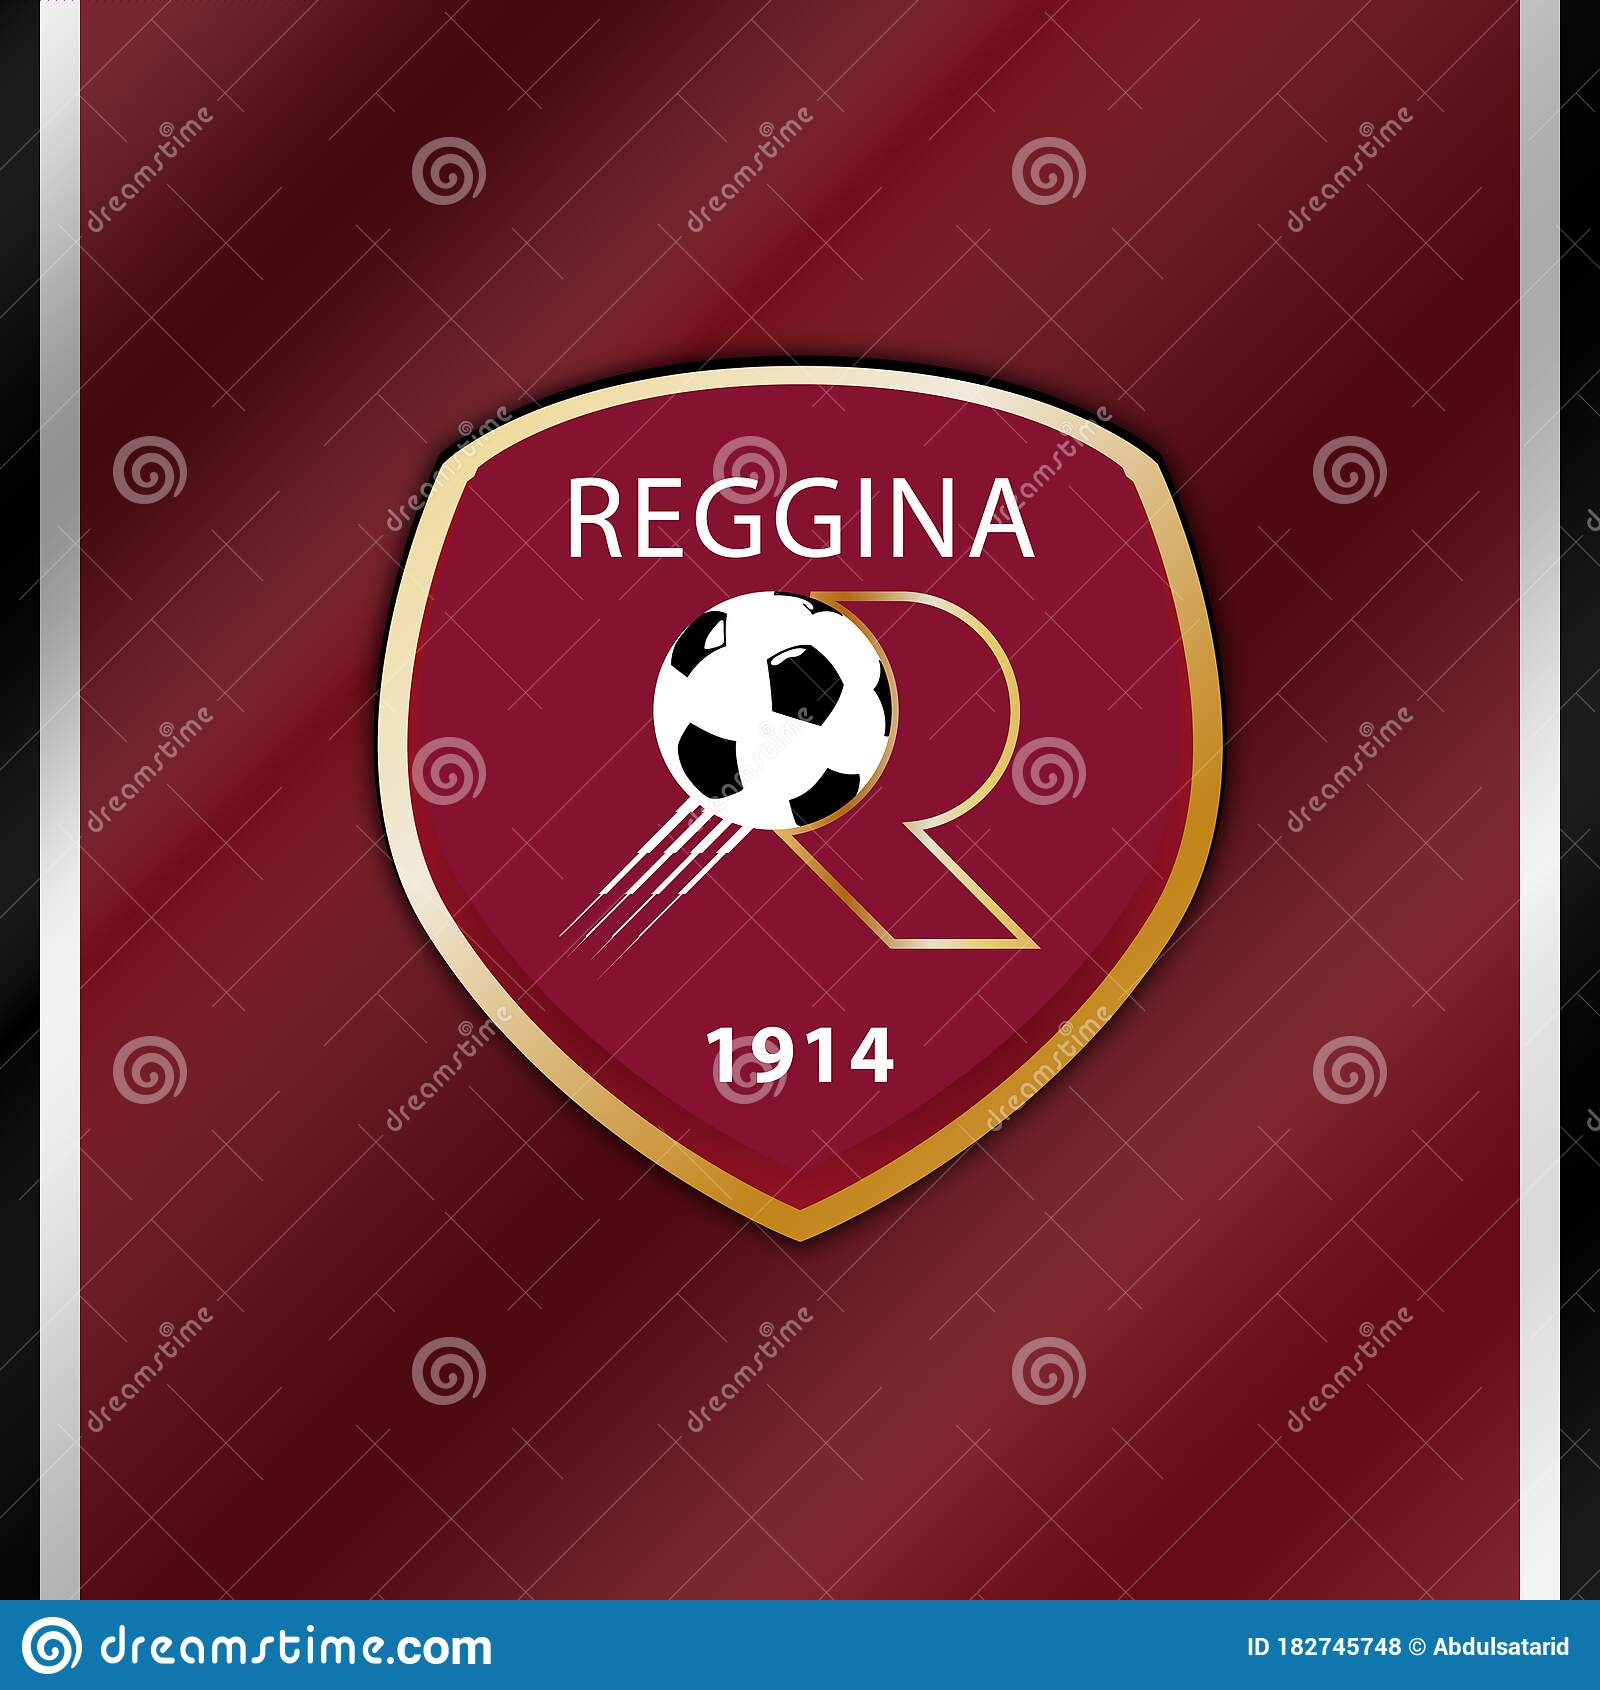 Reggina Emblem Editorial Stock Photo Illustration Of Arms 182745748